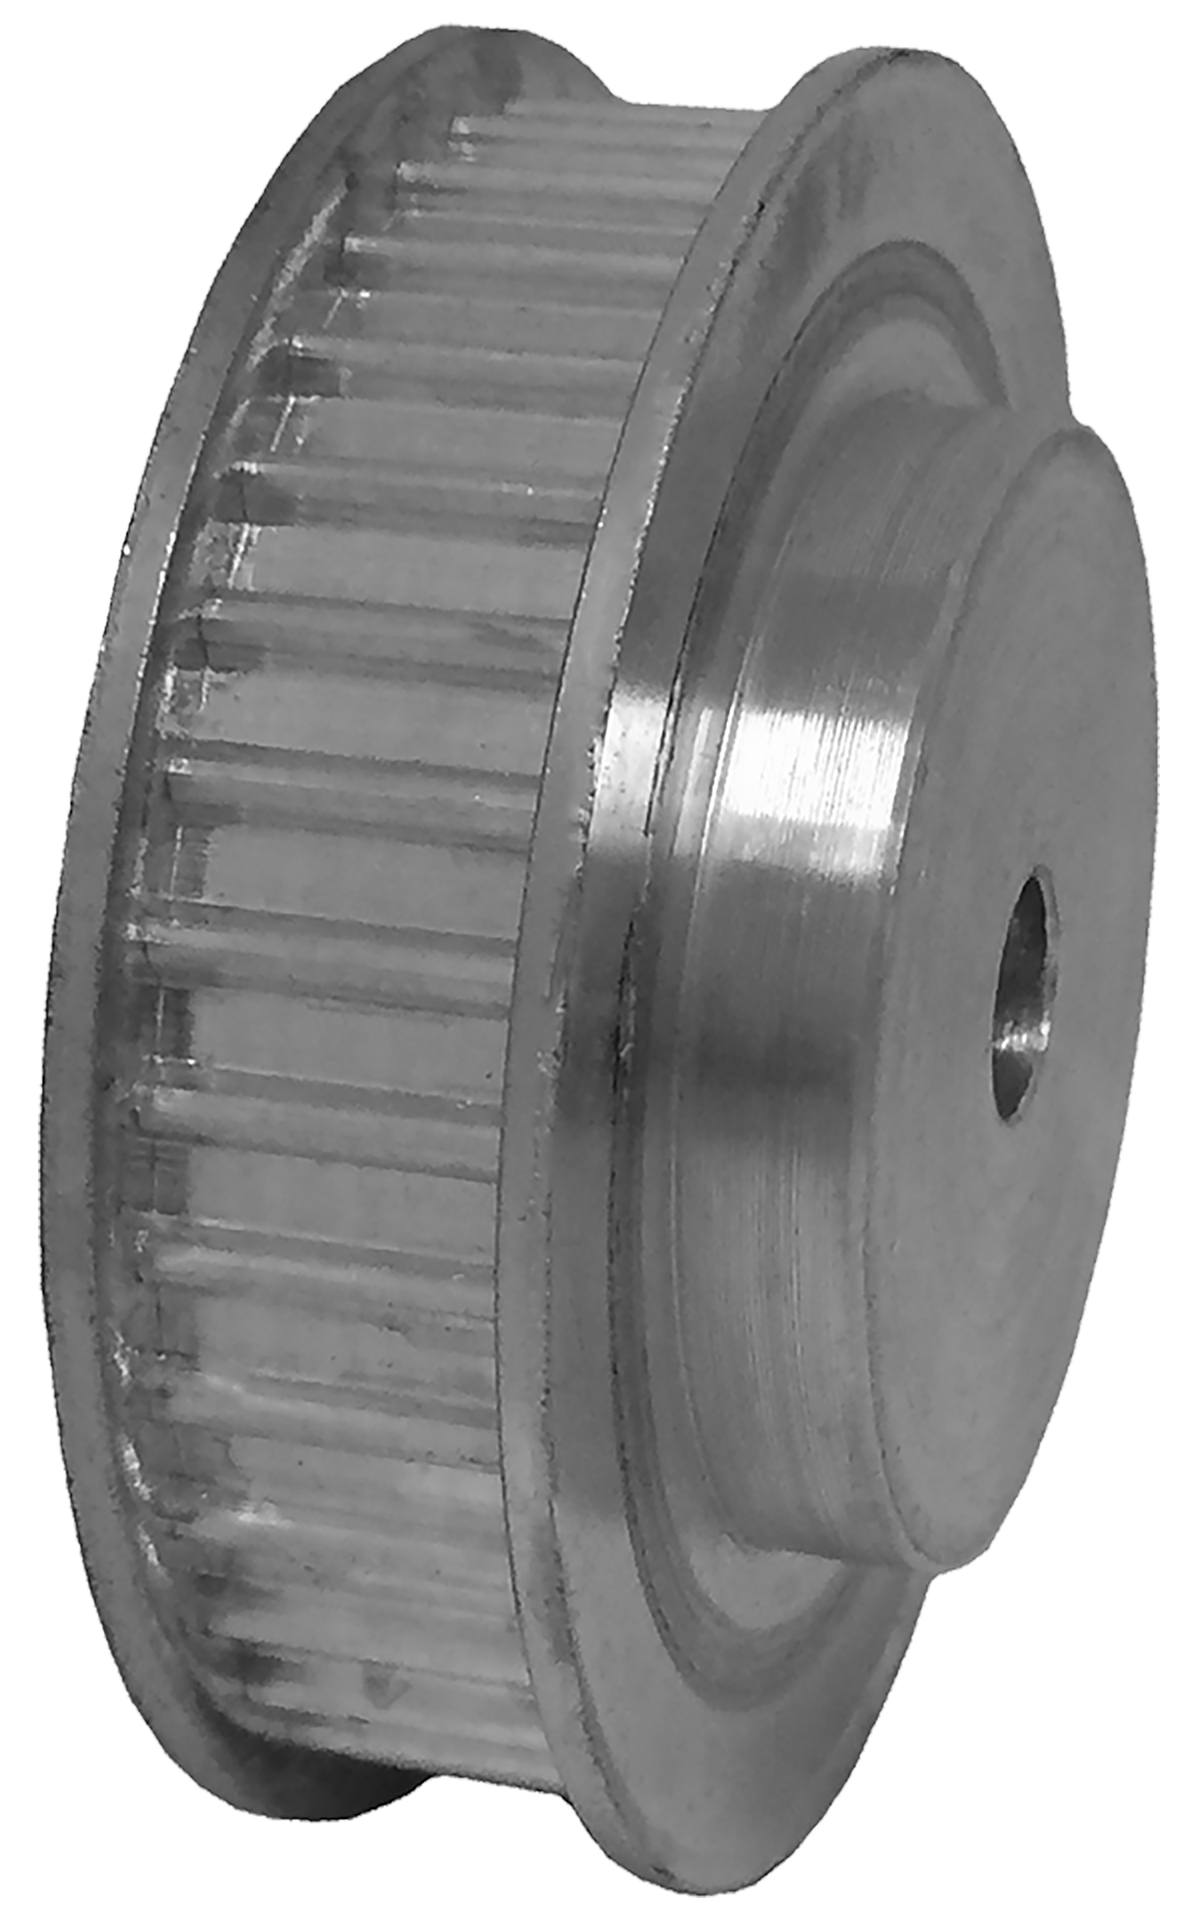 21AT5/36-2 - Aluminum Metric Pulleys